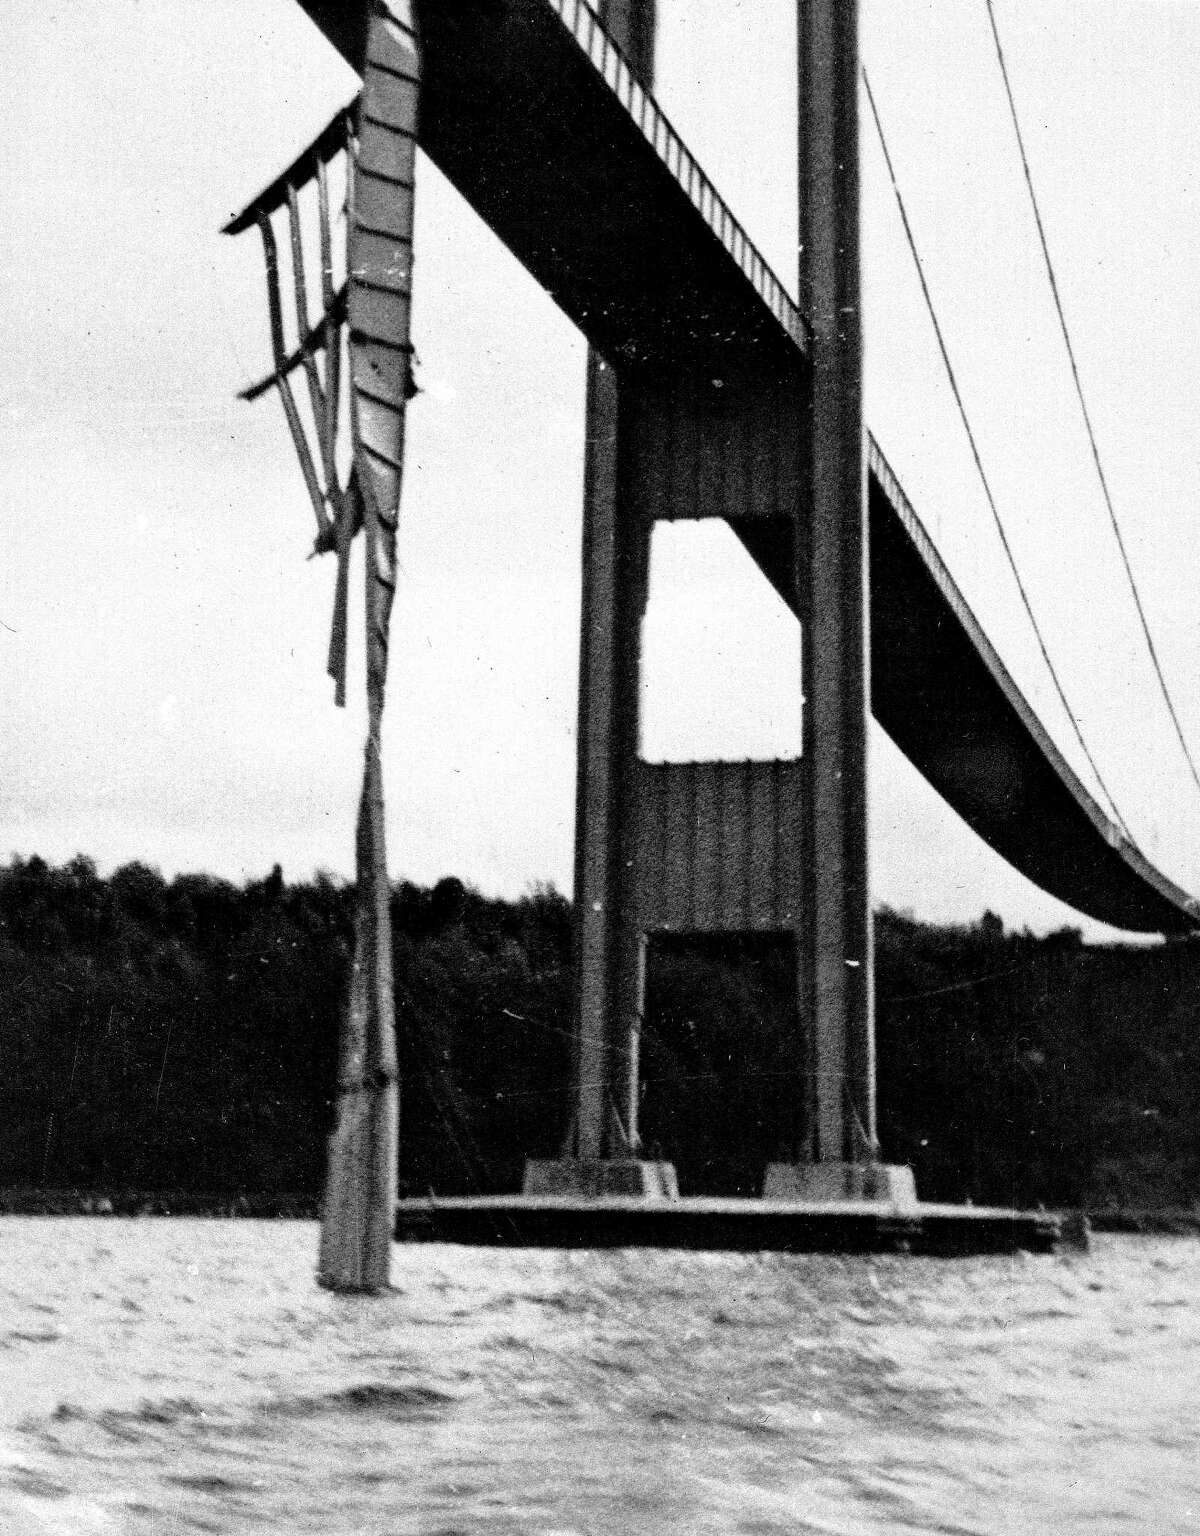 A part of the Tacoma Narrows Suspension bridge falls 190 feet into the Puget Sound after a gale wind swayed the bridge in Tacoma, Washington on Nov. 7, 1940.